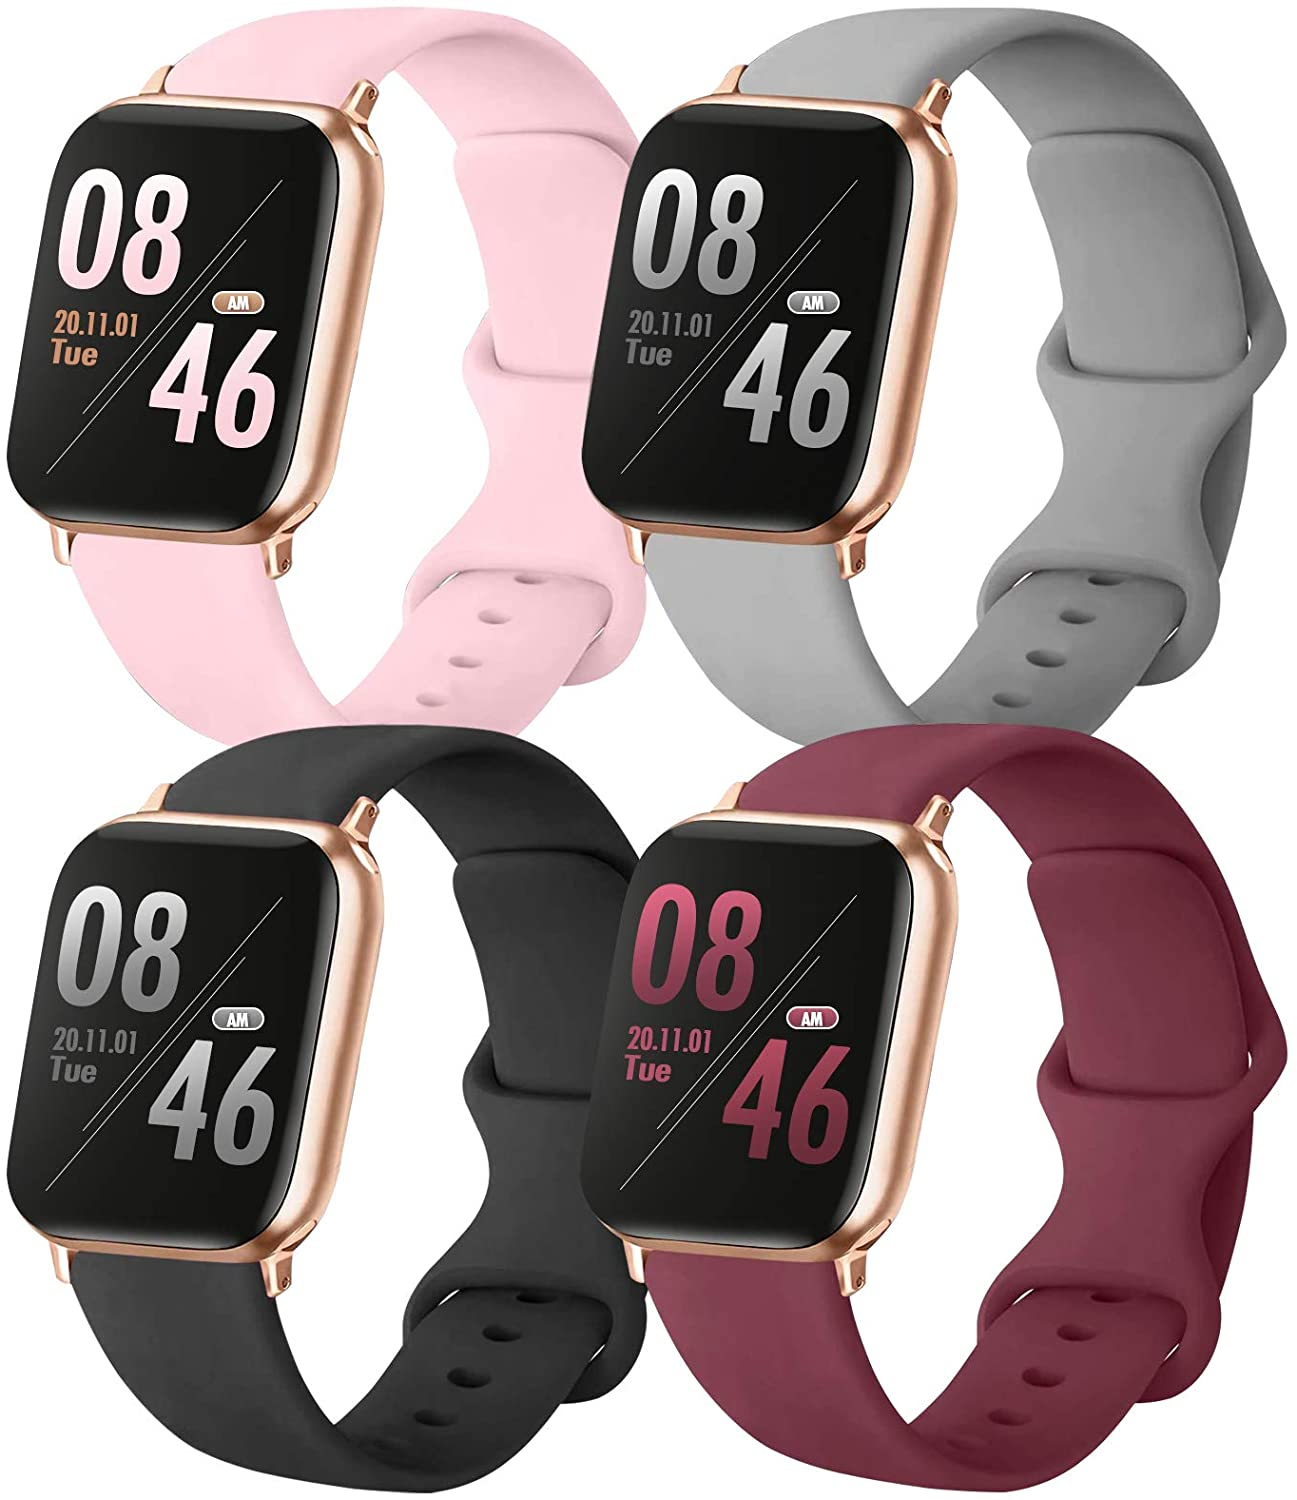 Brigtlaiff Pack 4 Compatible with Apple Watch Band 38mm 40mm 42mm 44mm, Soft Silicone Replacement Band for iWatch Series SE/6/5/4/3/2/1 (PinkSand/Gray/Black/WineRed, 38mm/40mm-S/M)